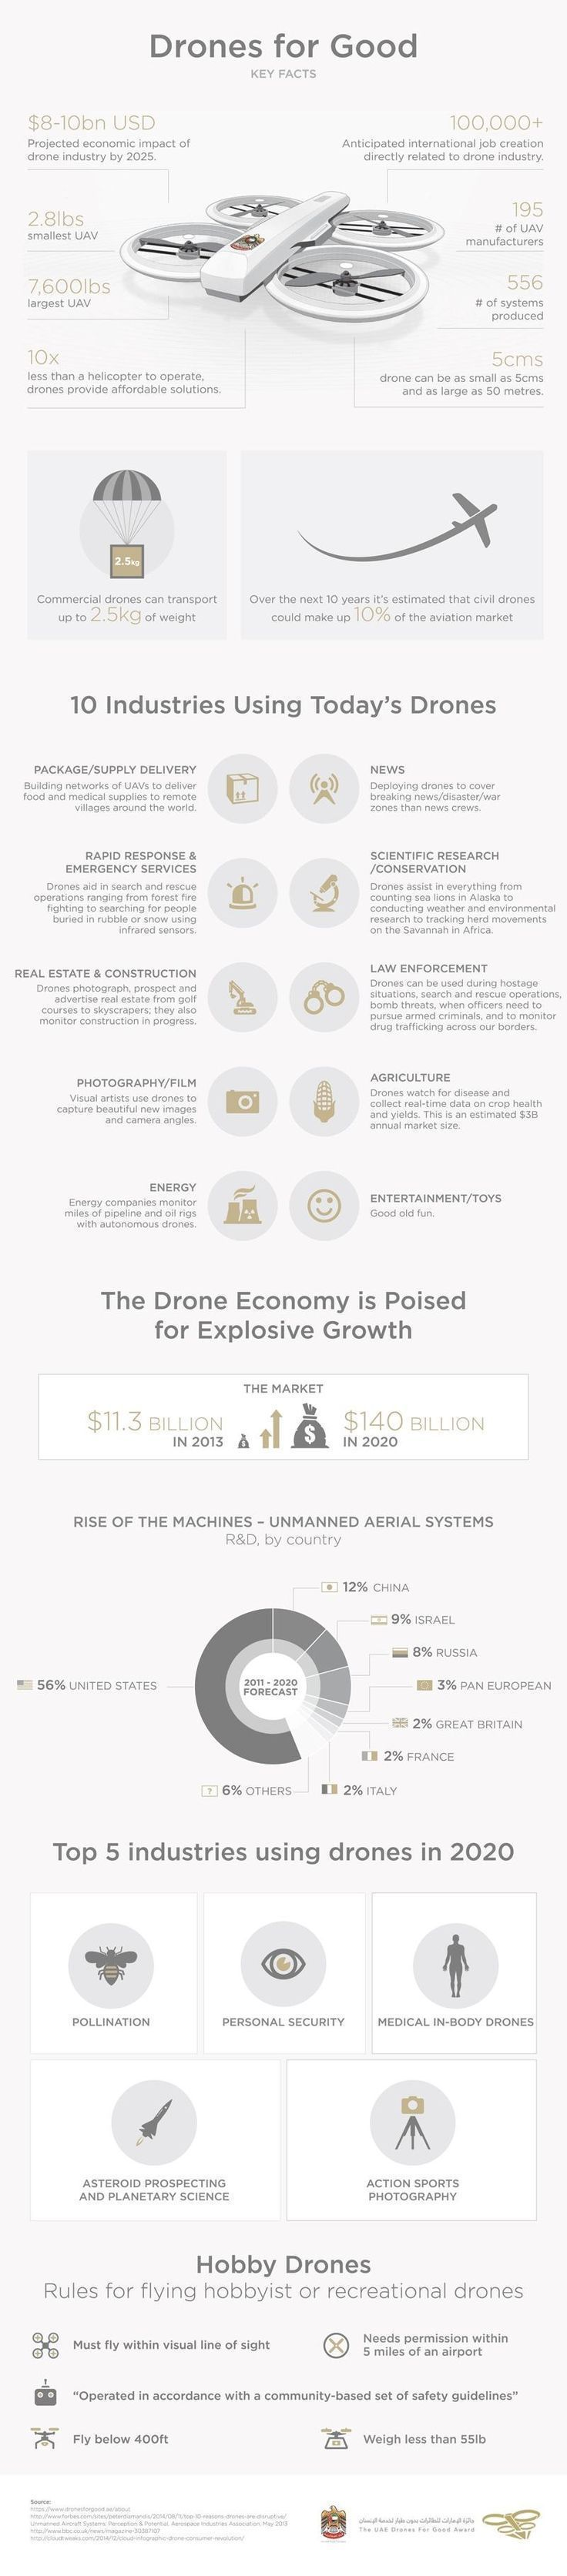 Drones for Good (Infographic) #dronetraining